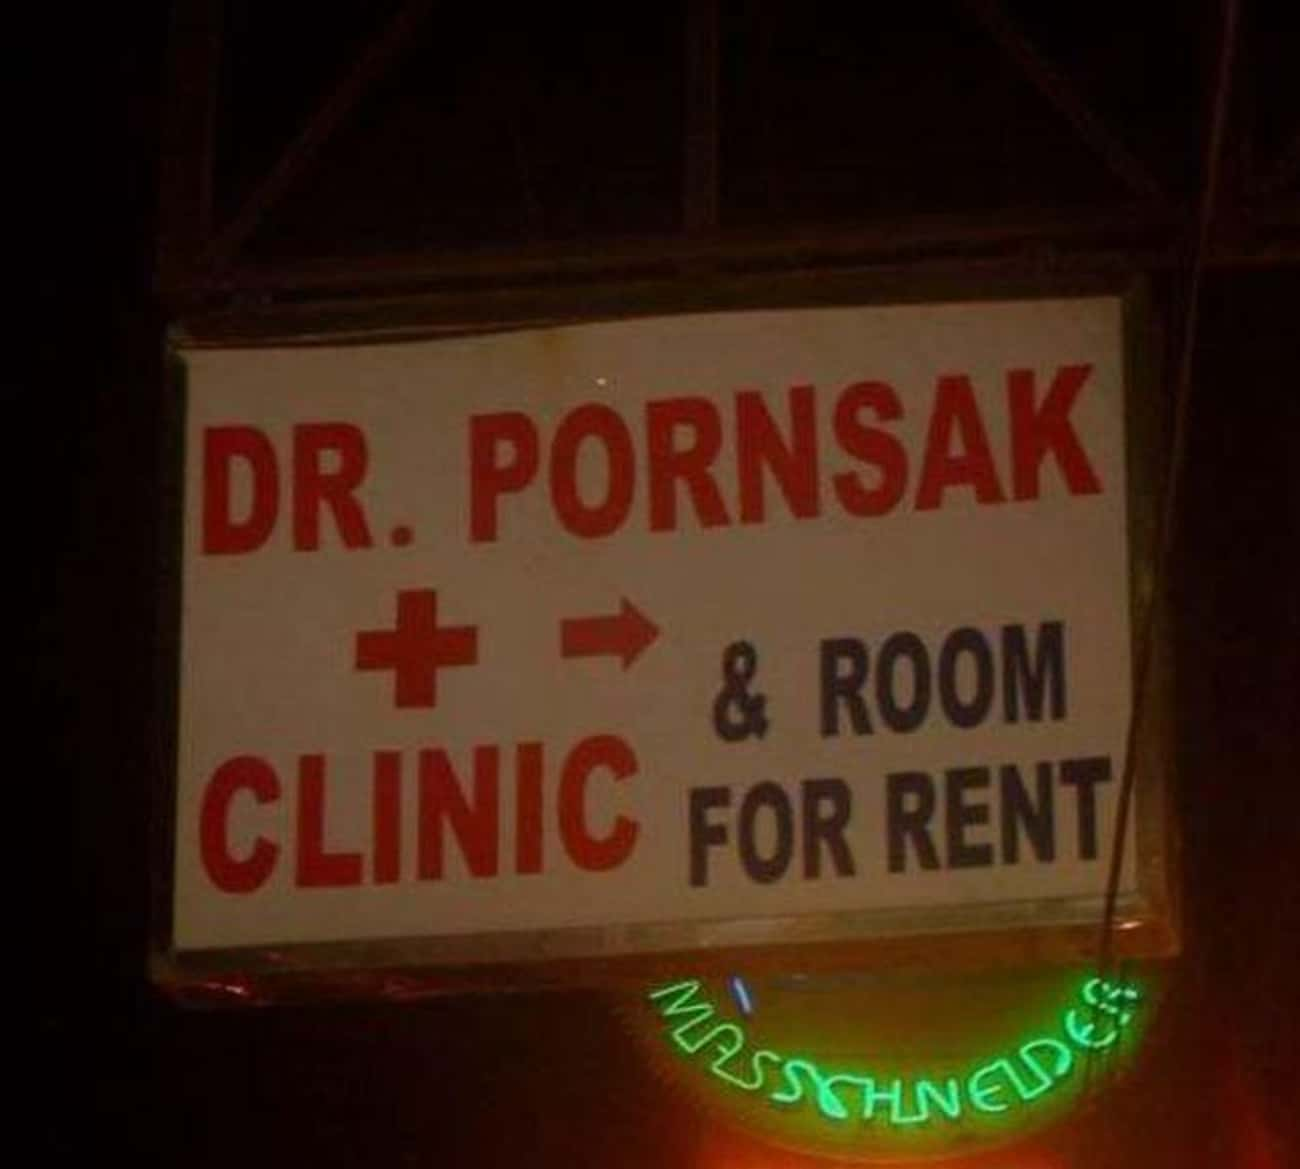 Sad Sack is listed (or ranked) 4 on the list Hilarious Doctor Names You Won't Believe Are Real